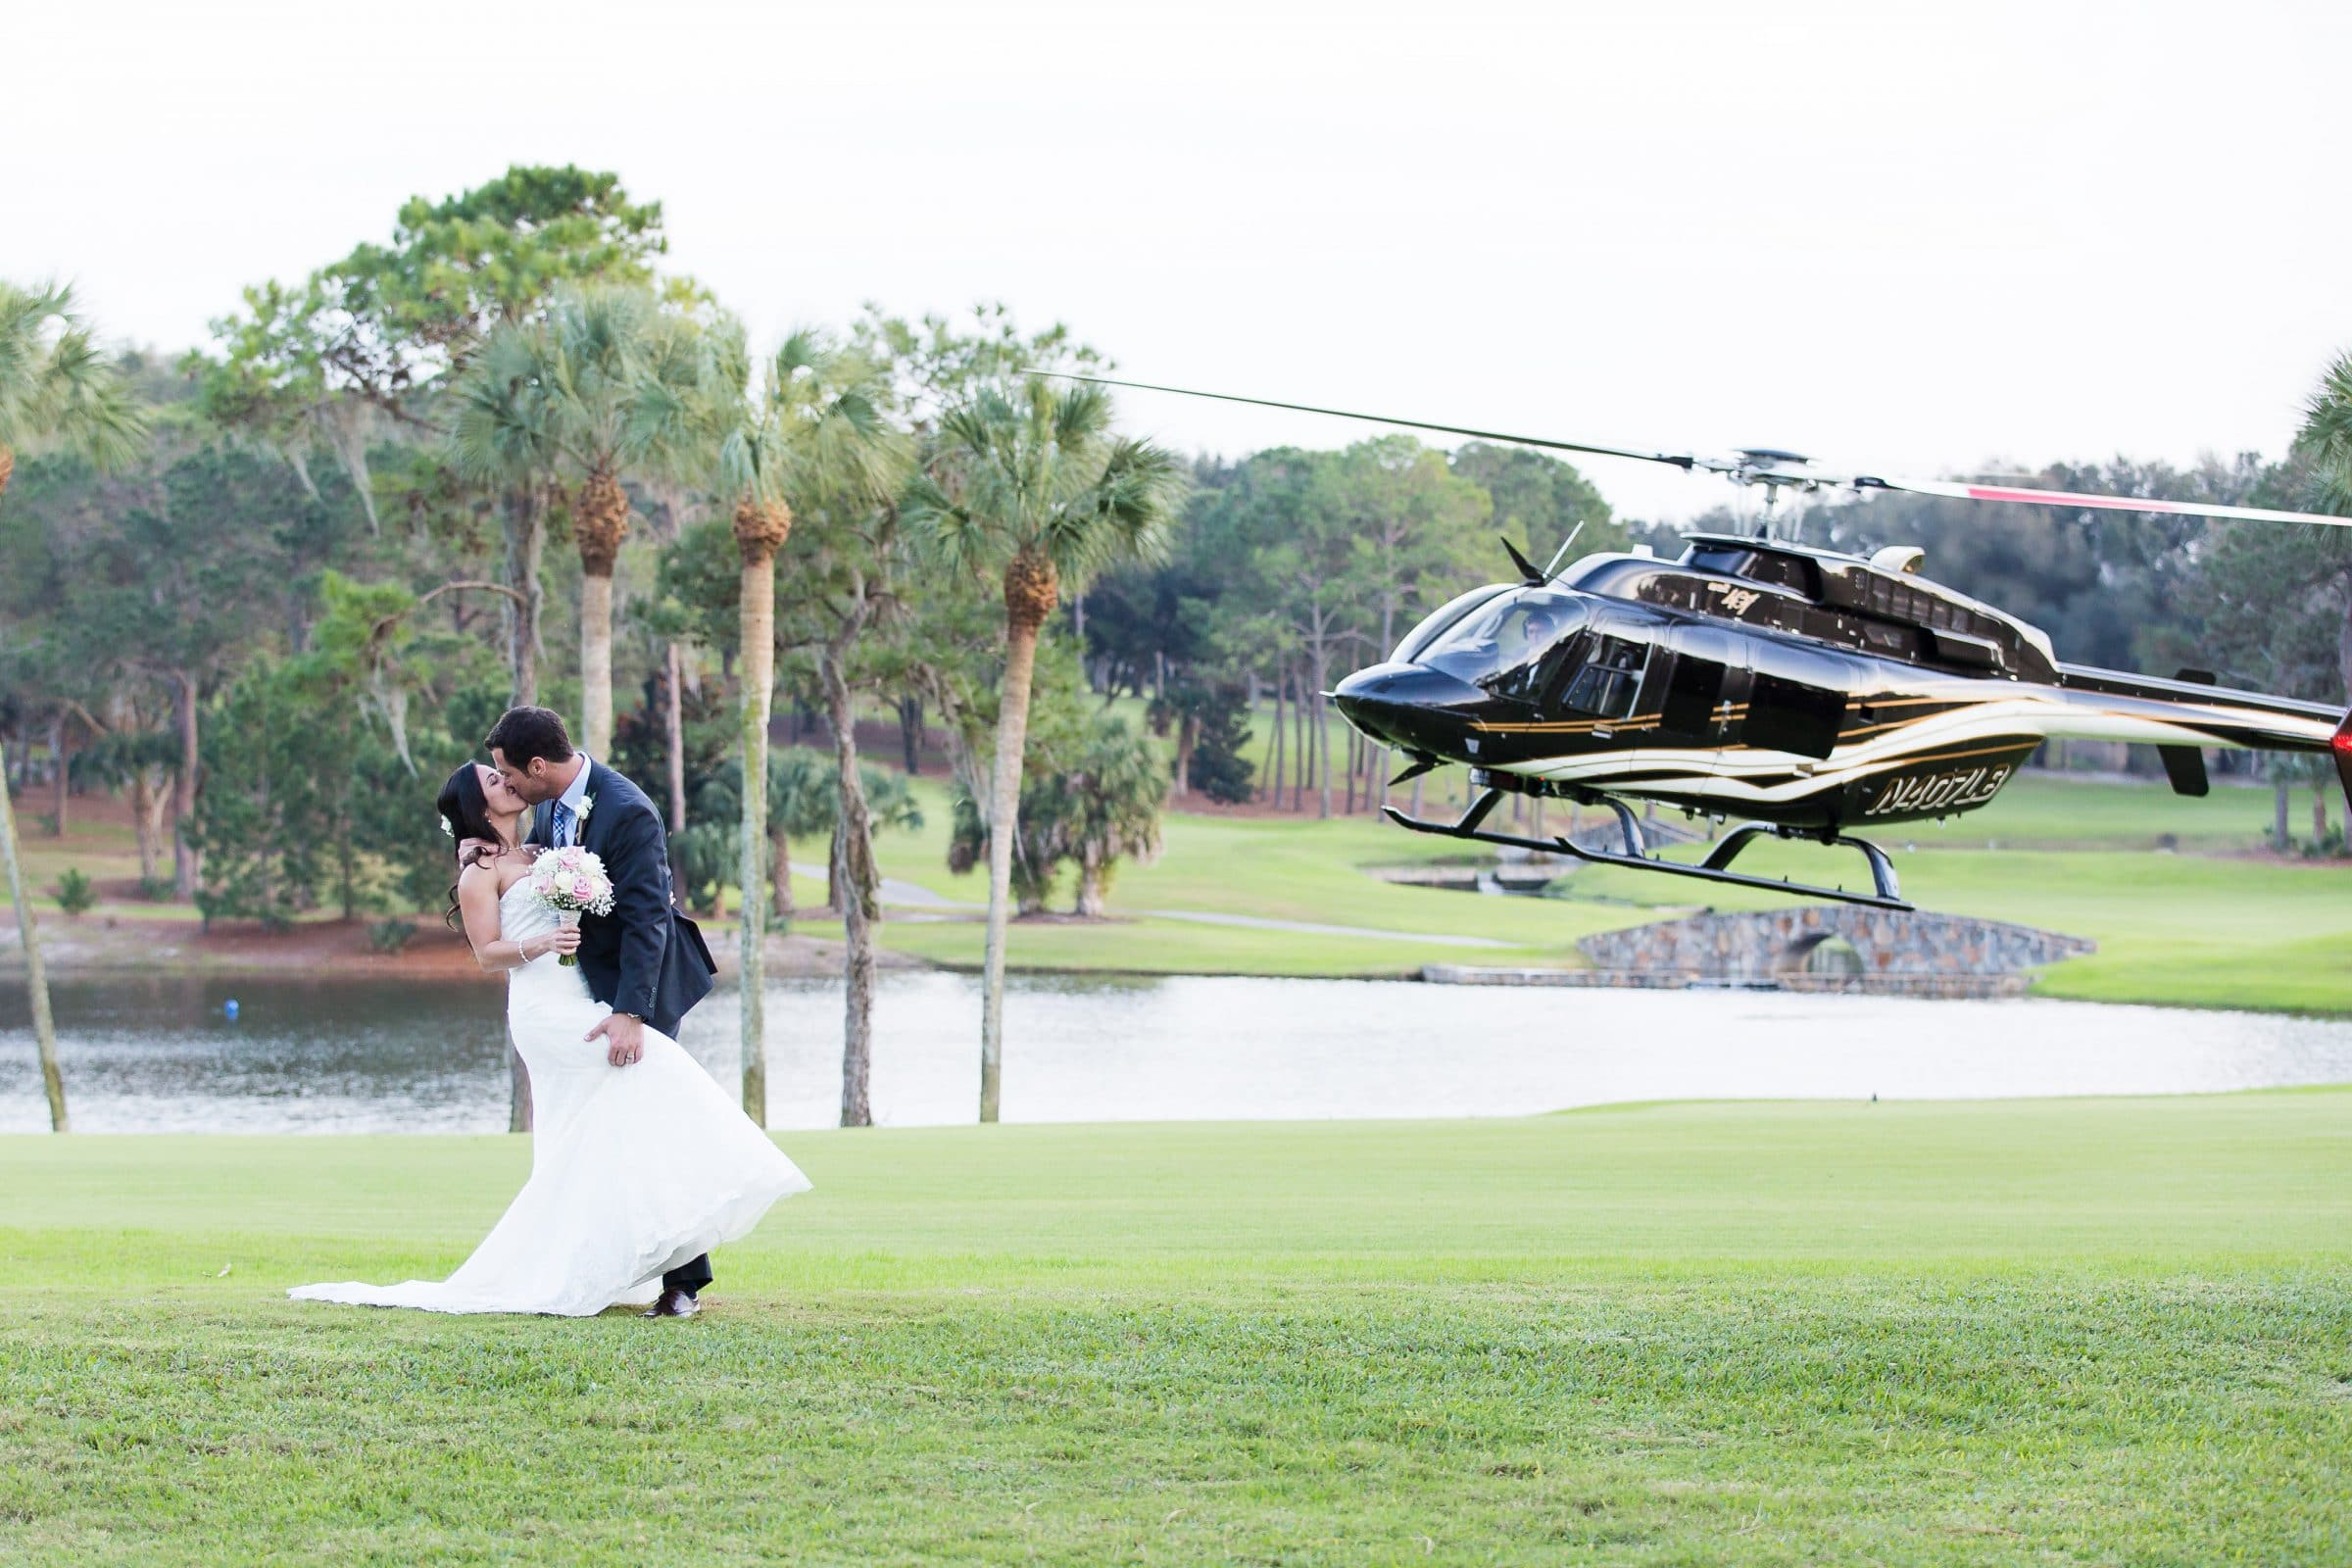 Bride and groom kissing while helicopter lands on golf course at Mission Inn